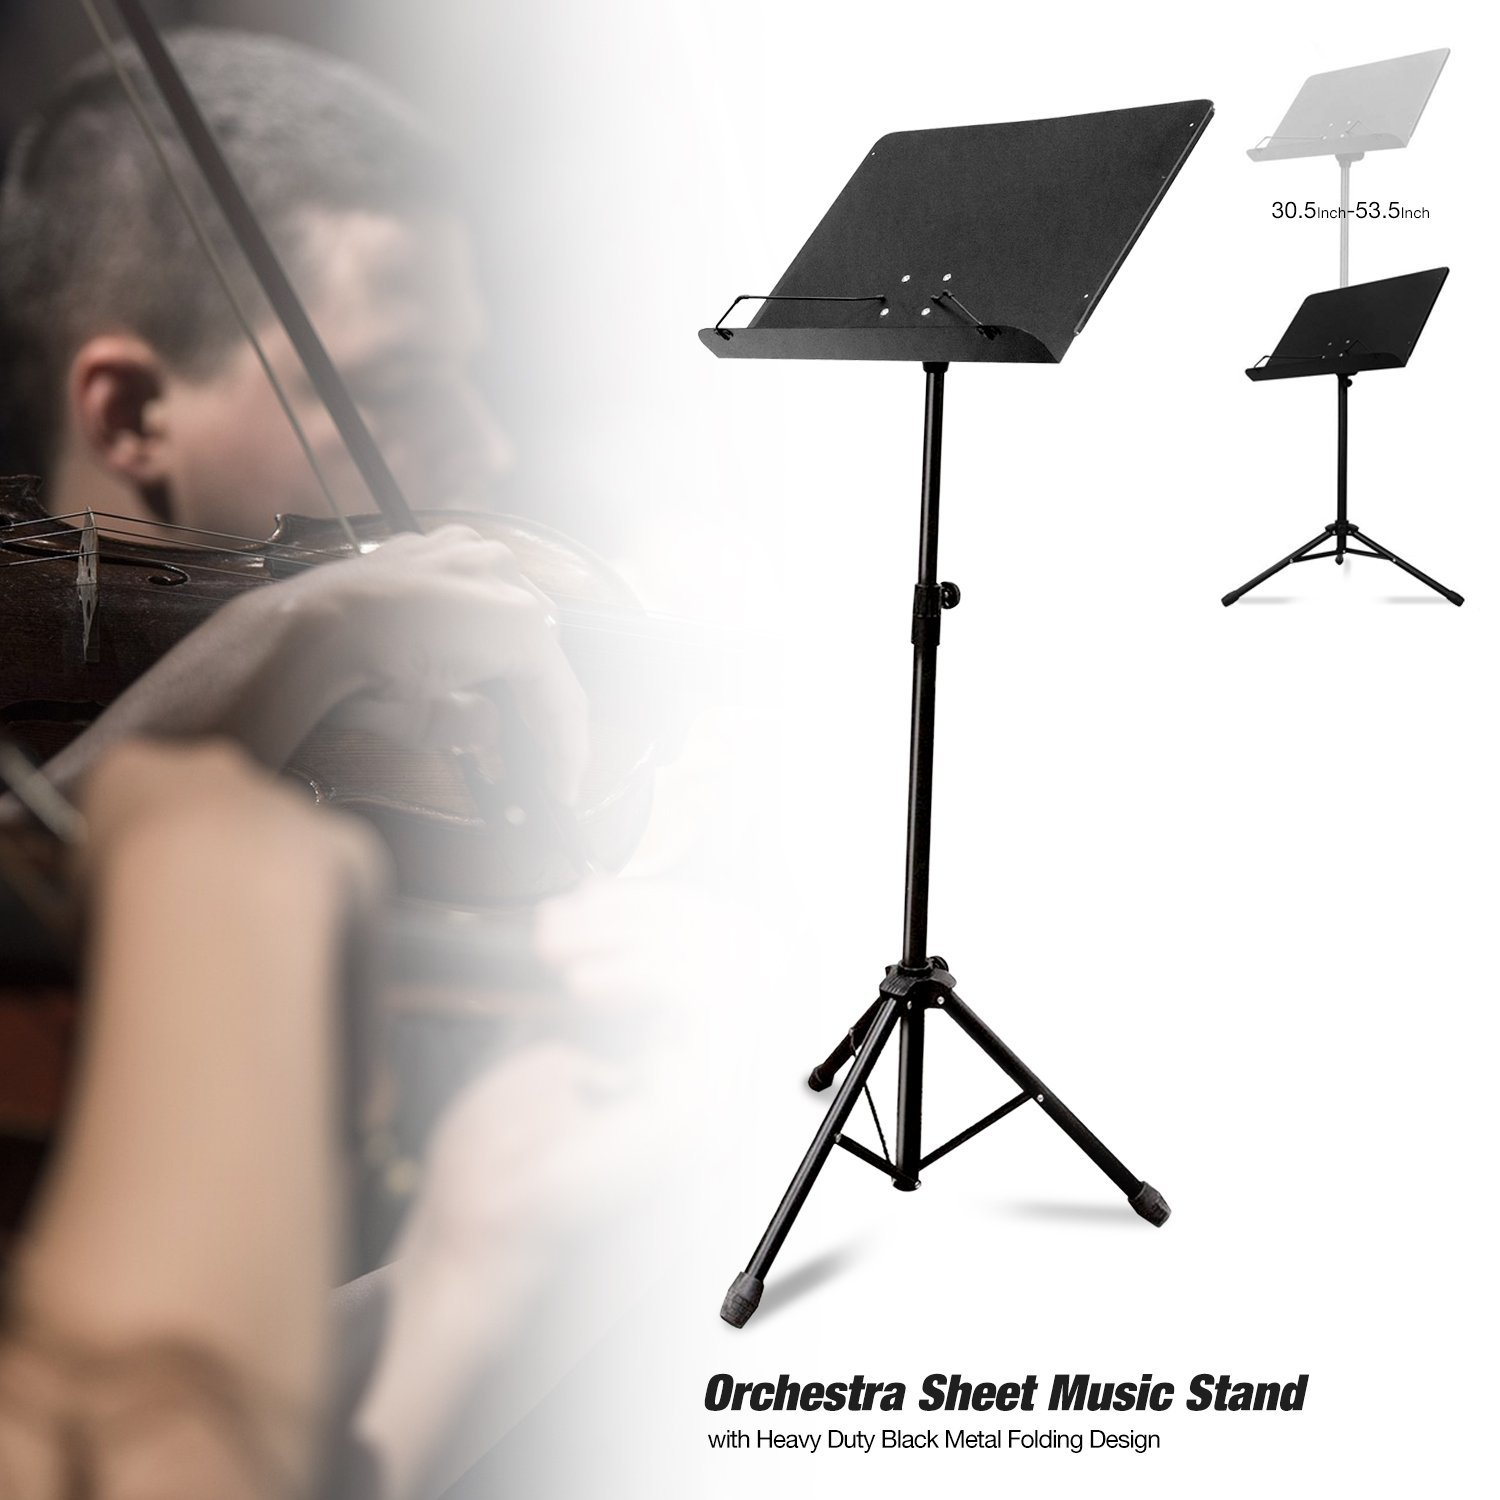 PARTYSAVING Orchestra Sheet Music Stand with Heavy Duty Black Metal Folding Design, 53.5-inch Tall, APL1282